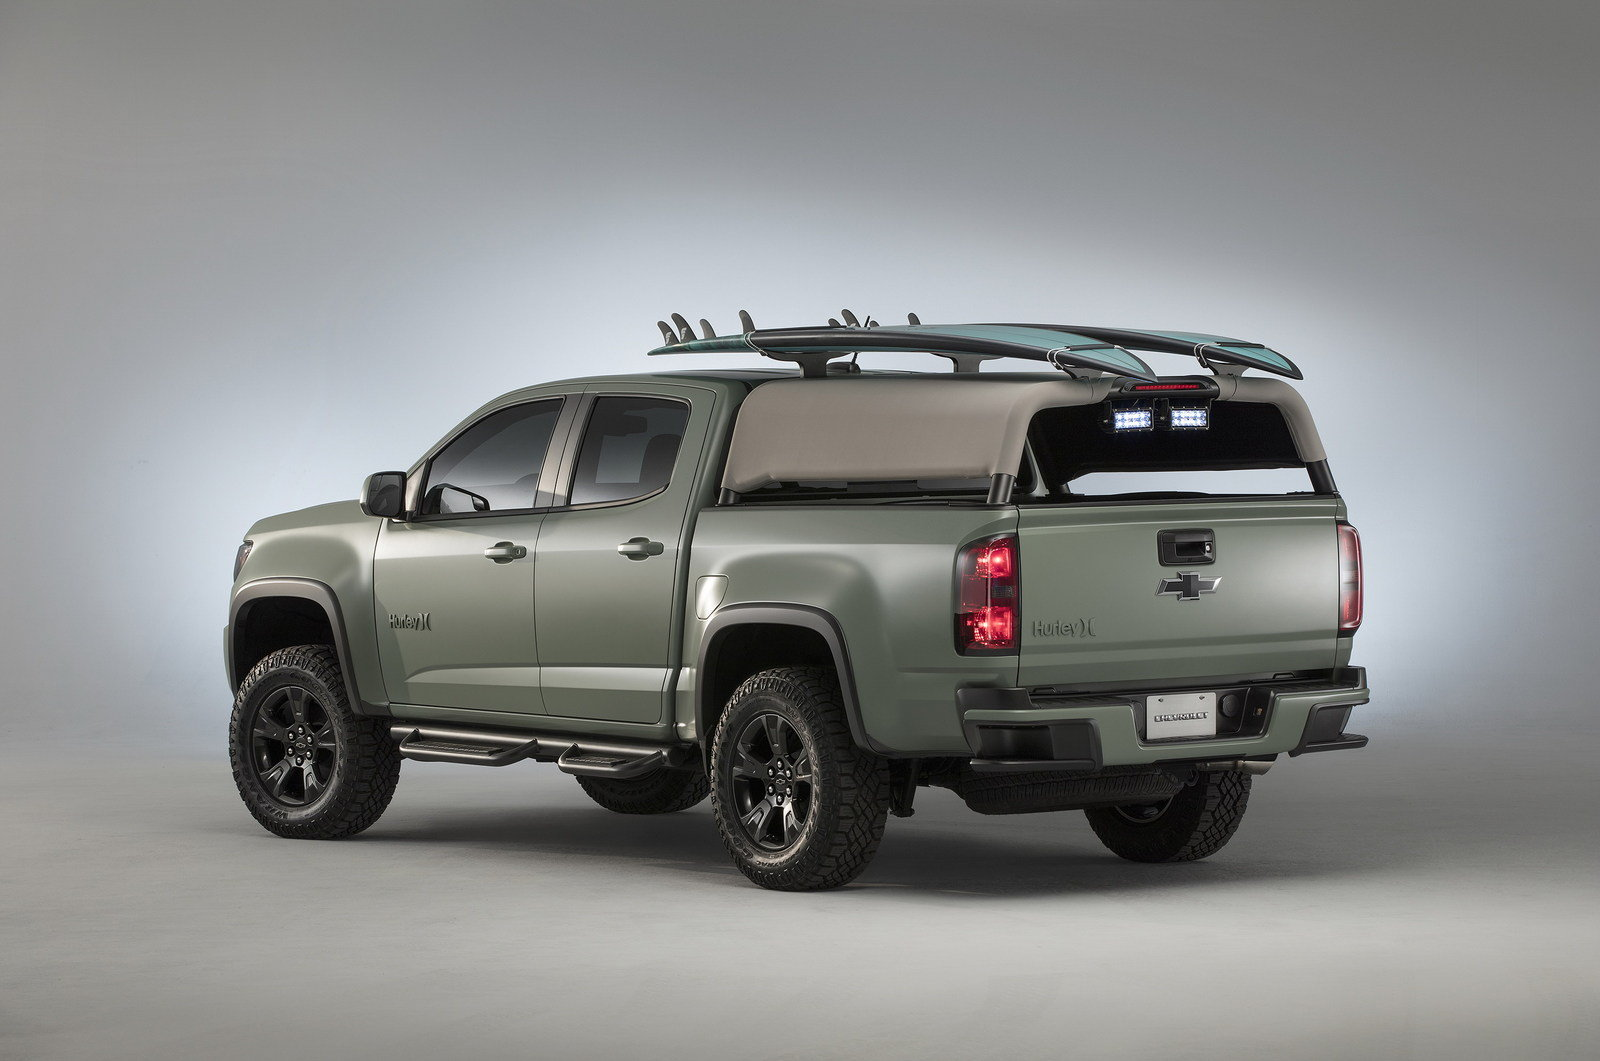 2016 chevrolet colorado z71 hurley concept picture 693802 truck review top speed. Black Bedroom Furniture Sets. Home Design Ideas